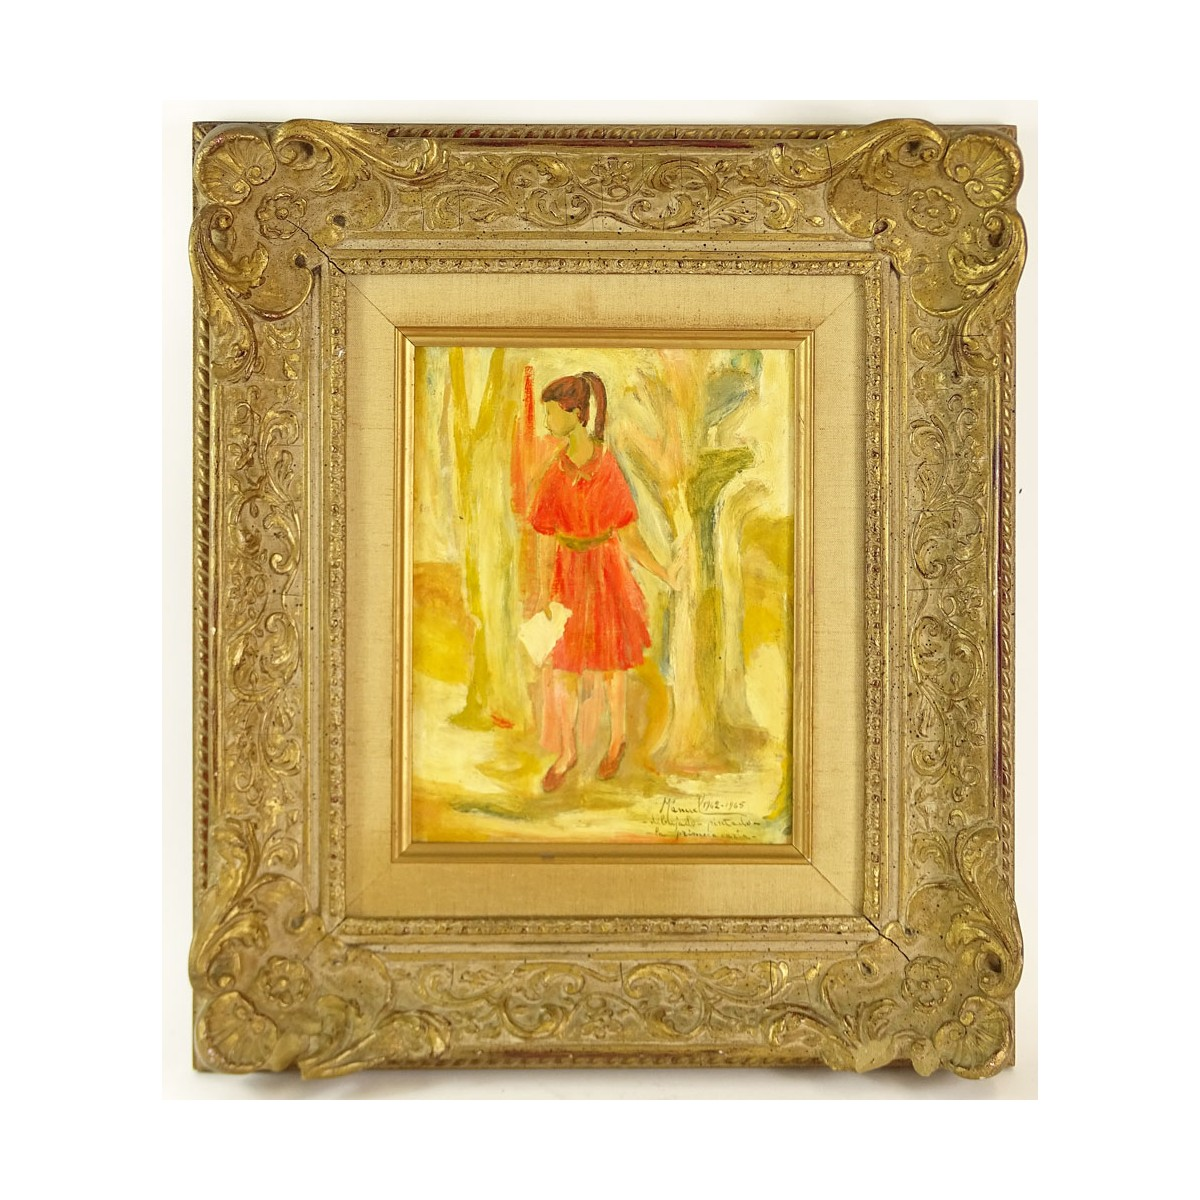 "Manuel Bordogna, Venezuelan (20th C) Oil on board ""Girl in Woods"" Signed and titled lower right. Go"